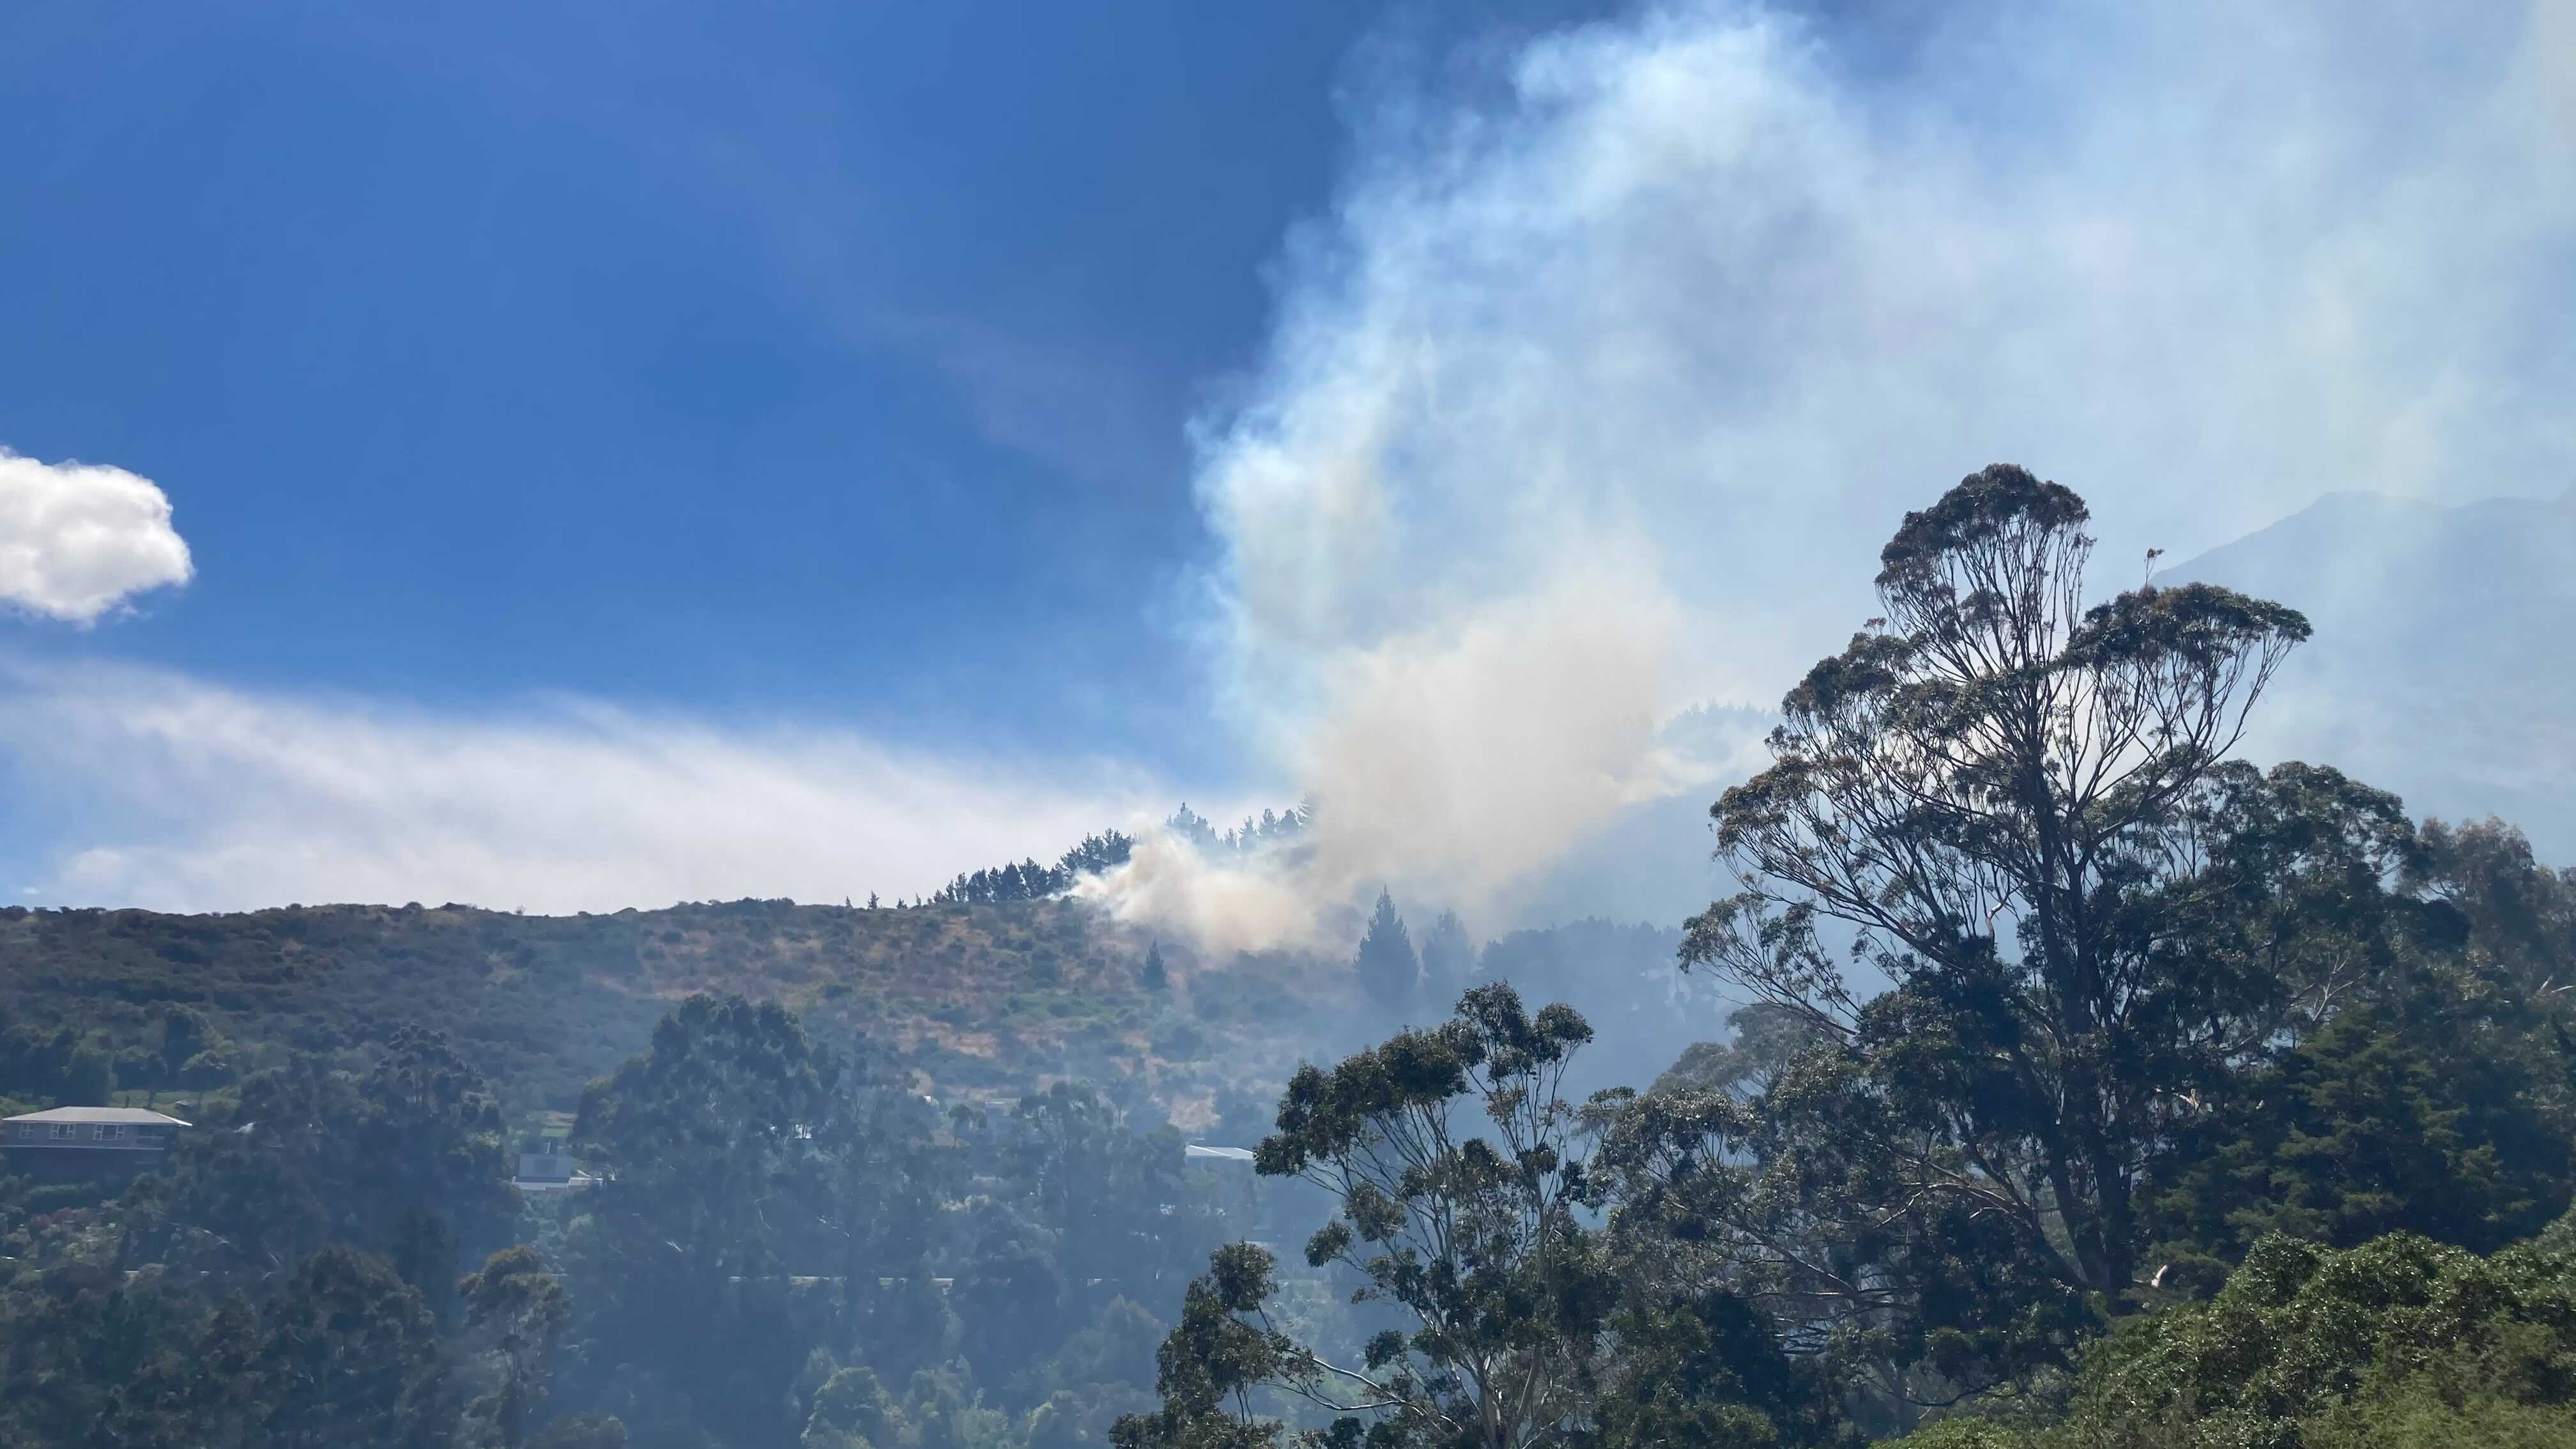 The large fire at Cass Bay. Photo: Geoff Sloan